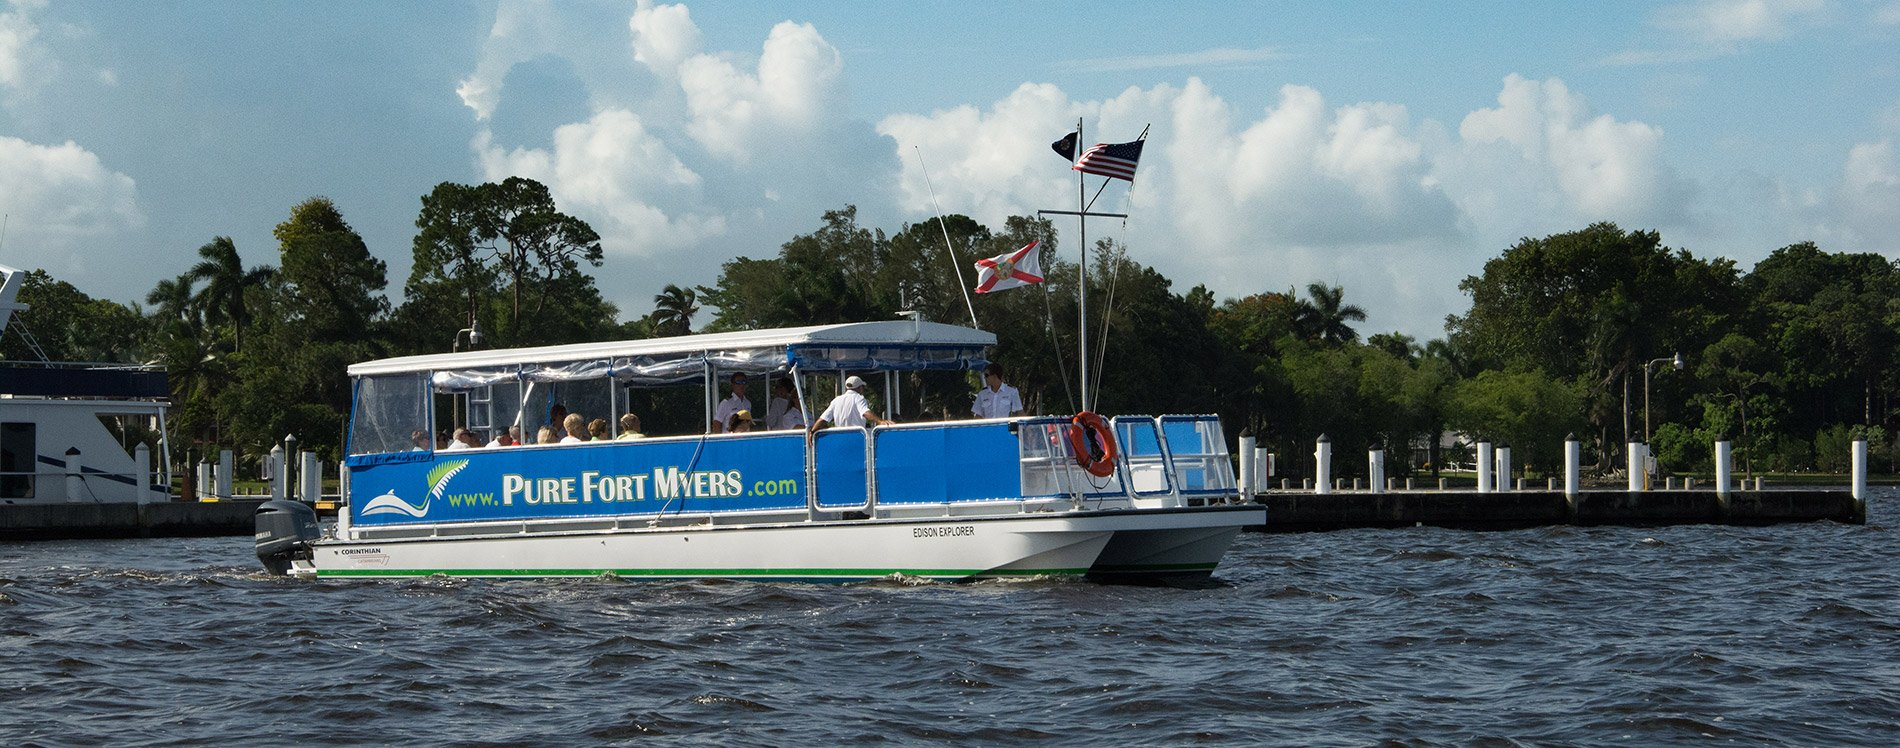 Sightseeing In Fort Myers Sunset Cruises River Tour Pure